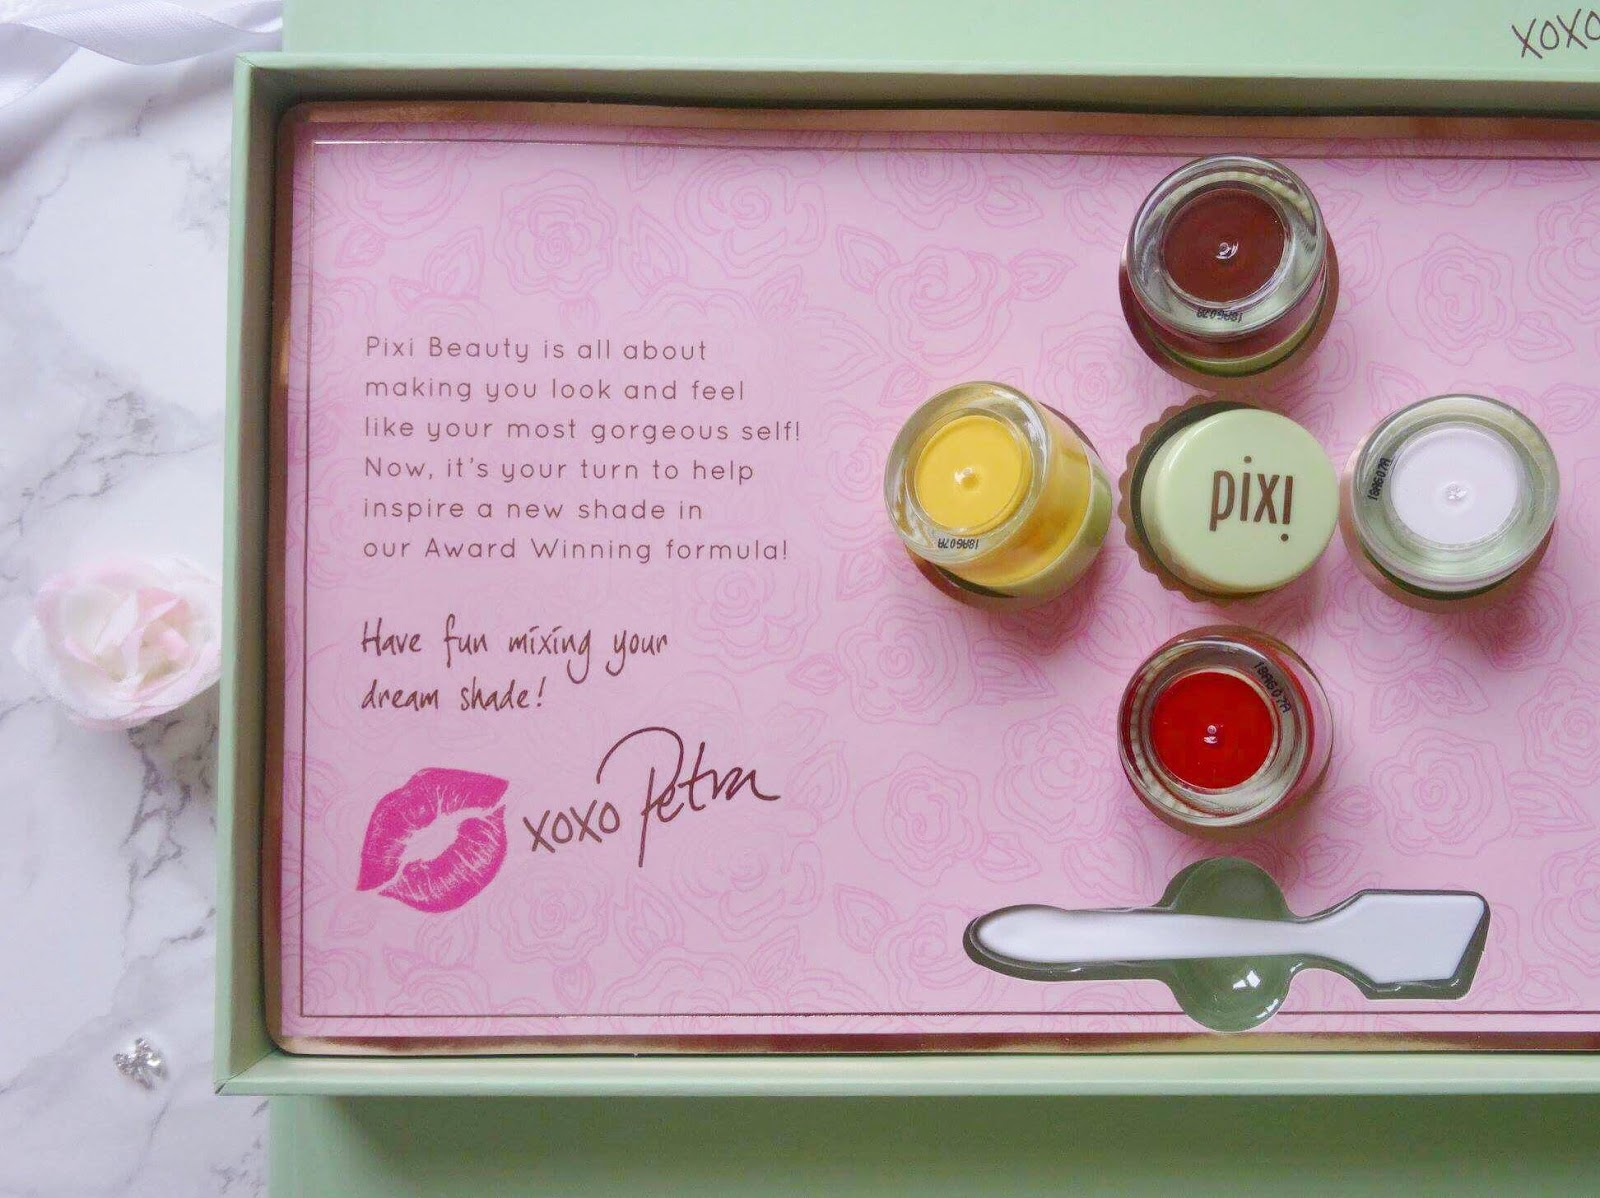 Pixi by Petra PR Package Message From Petra